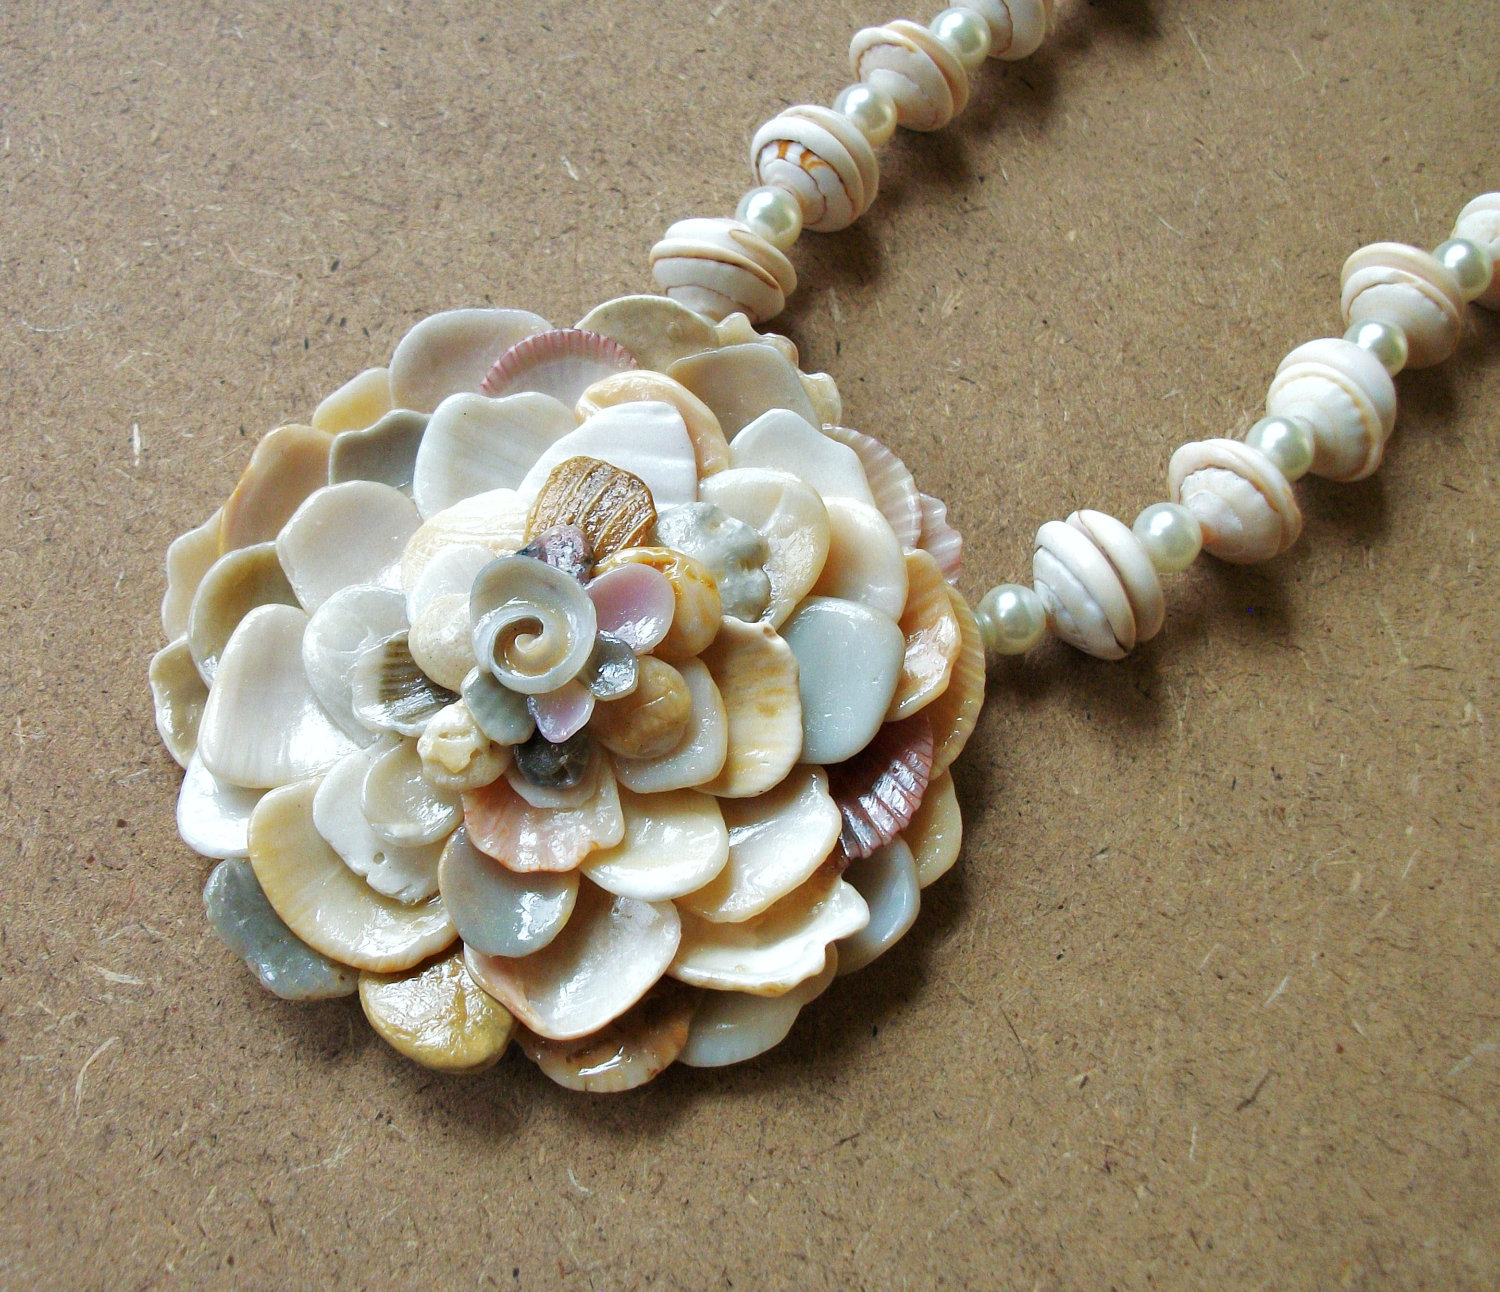 Seashell Jewelry - A Great Accessory to both Casual and Formal Wear